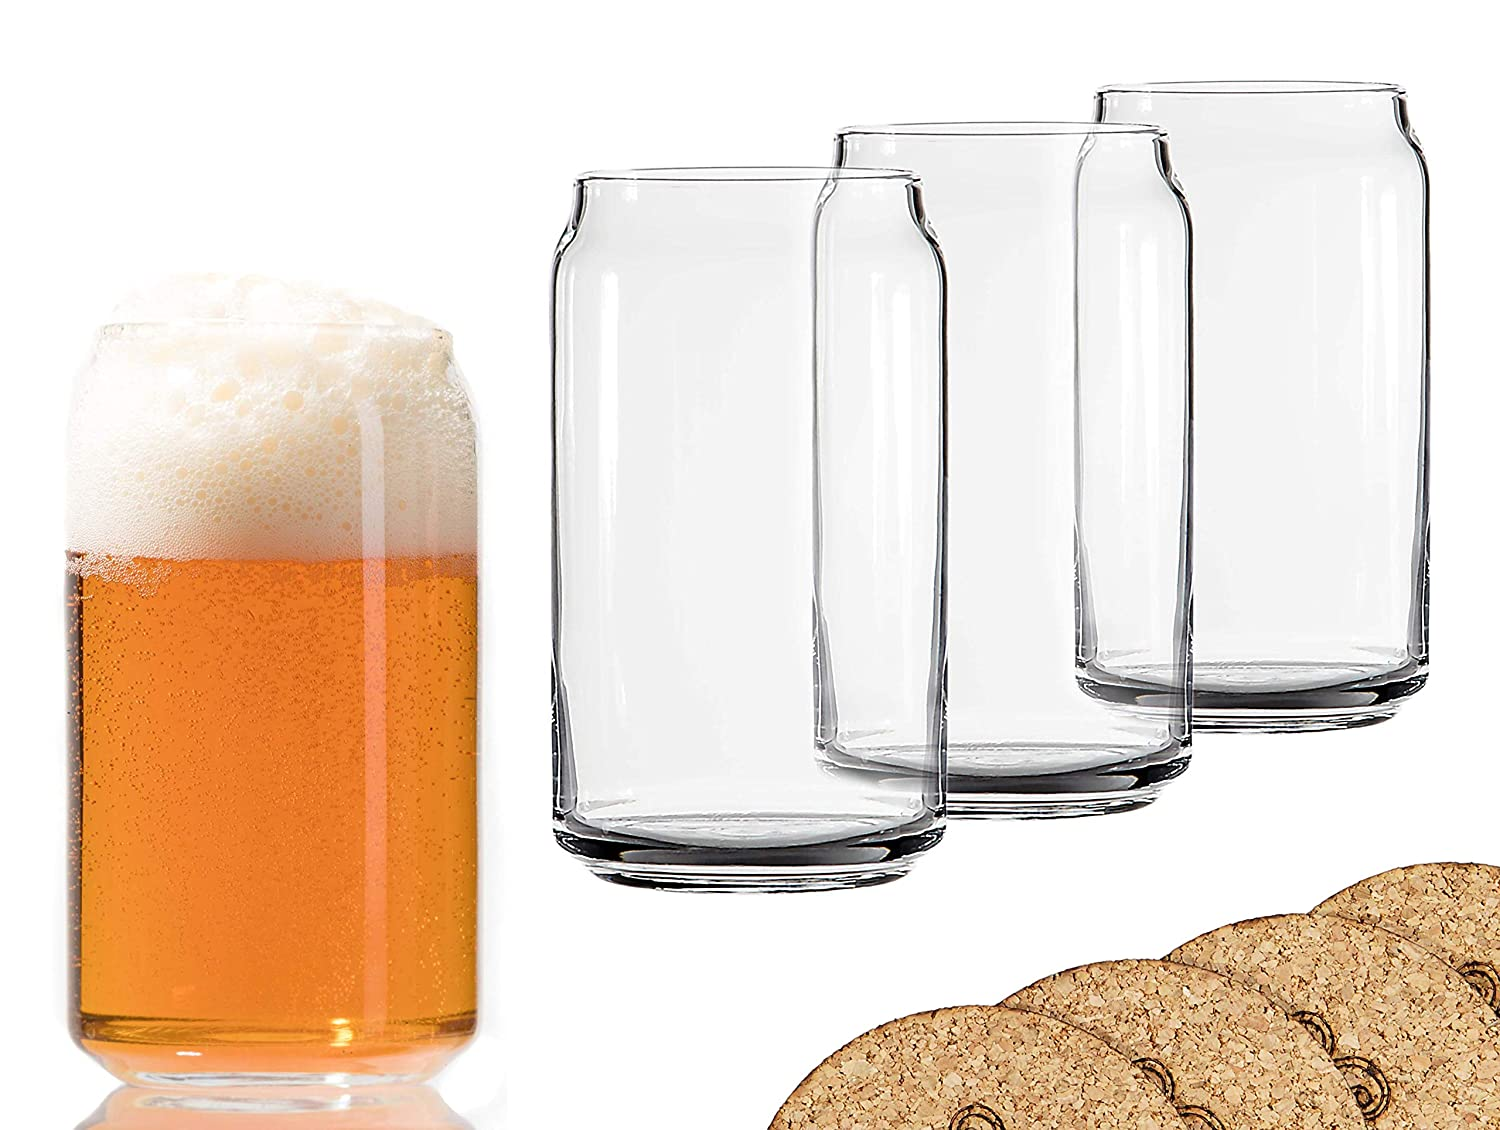 Ecodesign Drinkware Libbey Beer Glass Can Shaped 16 oz - Pint Beer Glasses 4 PACK w/coasters